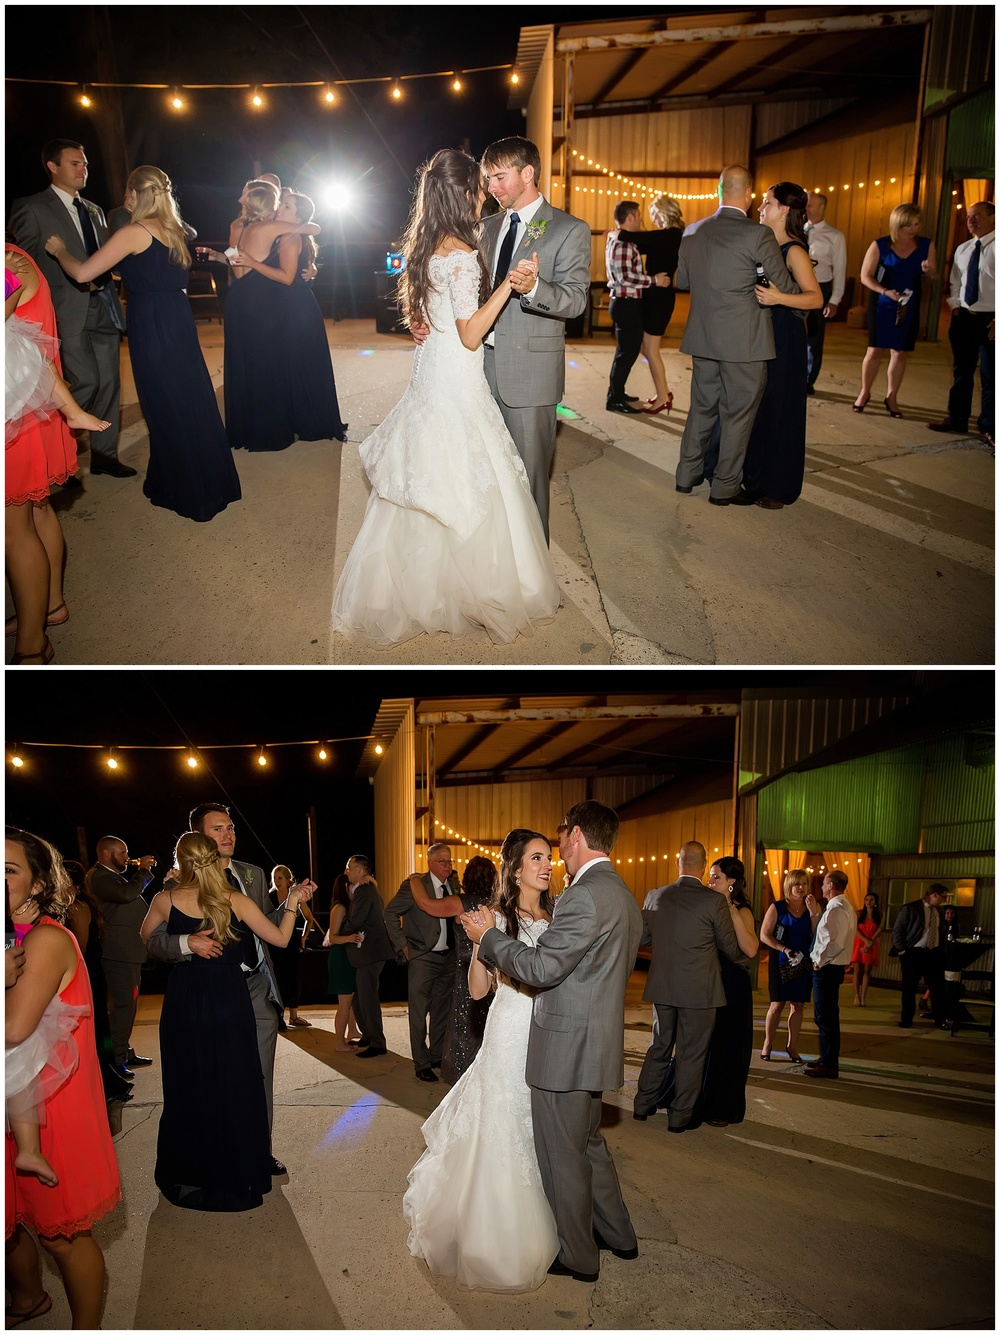 Kinler_DixieGin_Shreveport_Wedding_80.jpg